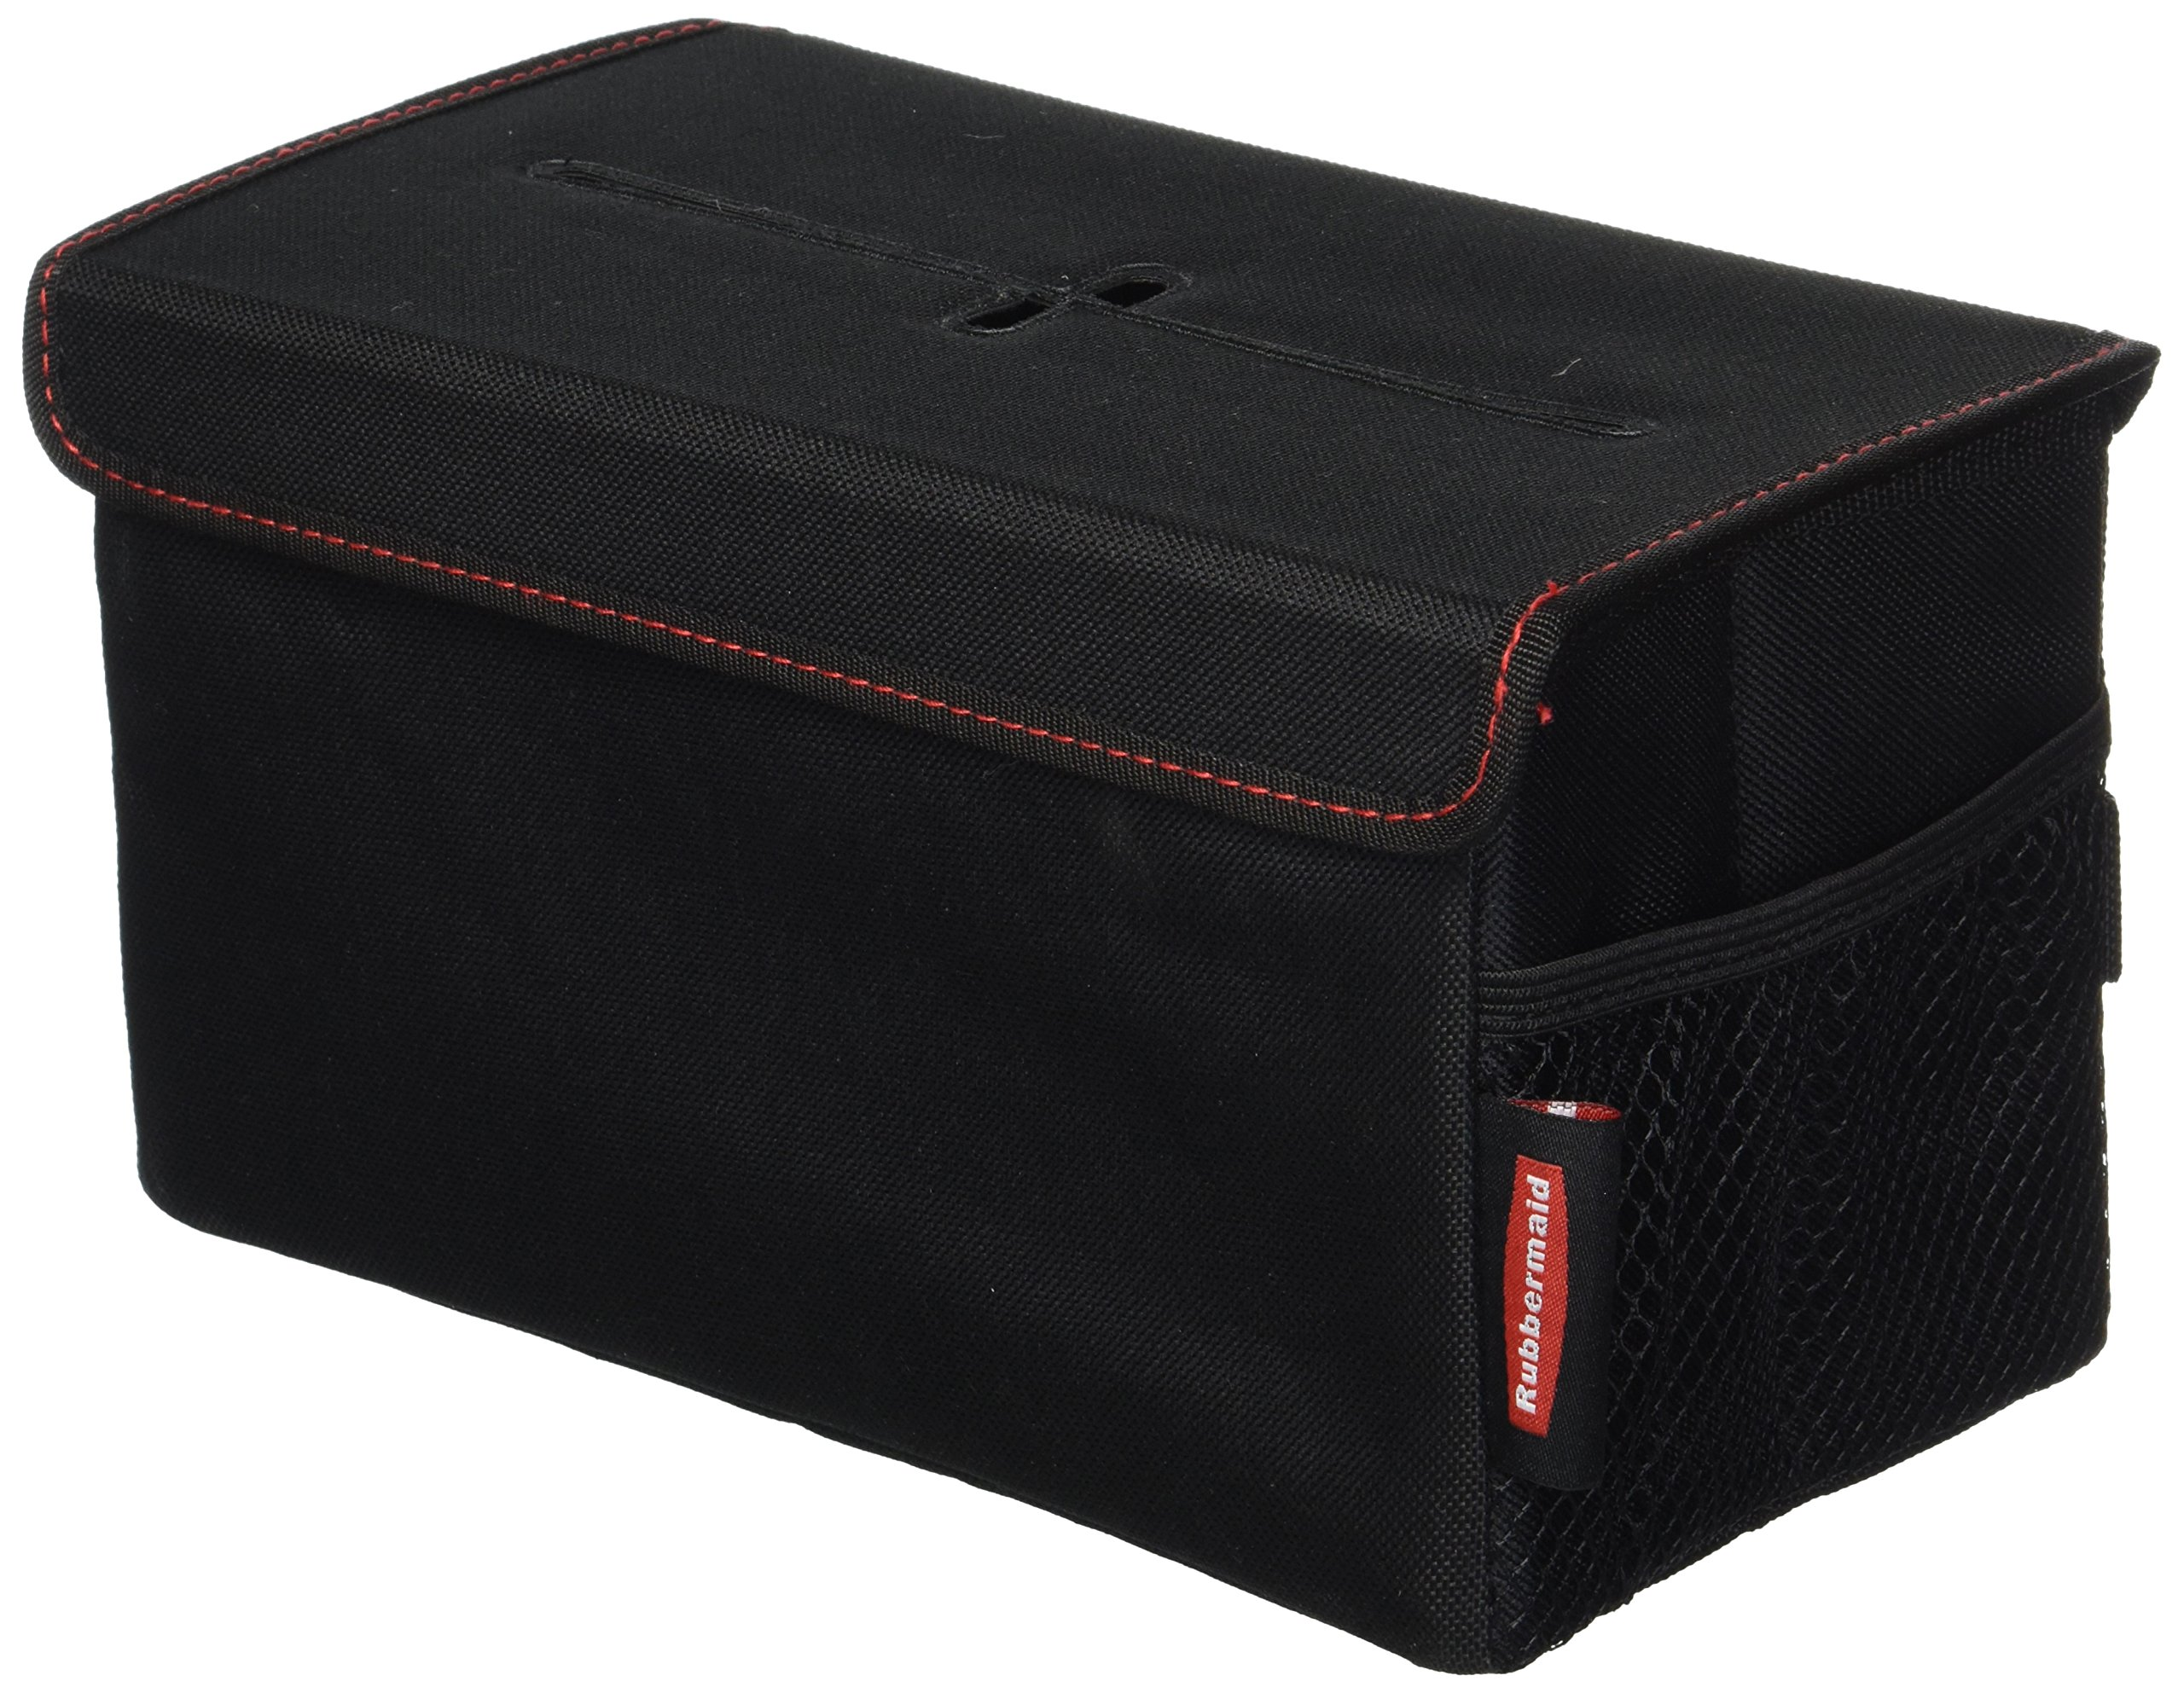 Rubbermaid 3355-00 Automotive Back Seat Organizer/Hanging Car Caddy: Large Box Tissue Paper Dispenser with Mesh Storage Pockets by Rubbermaid